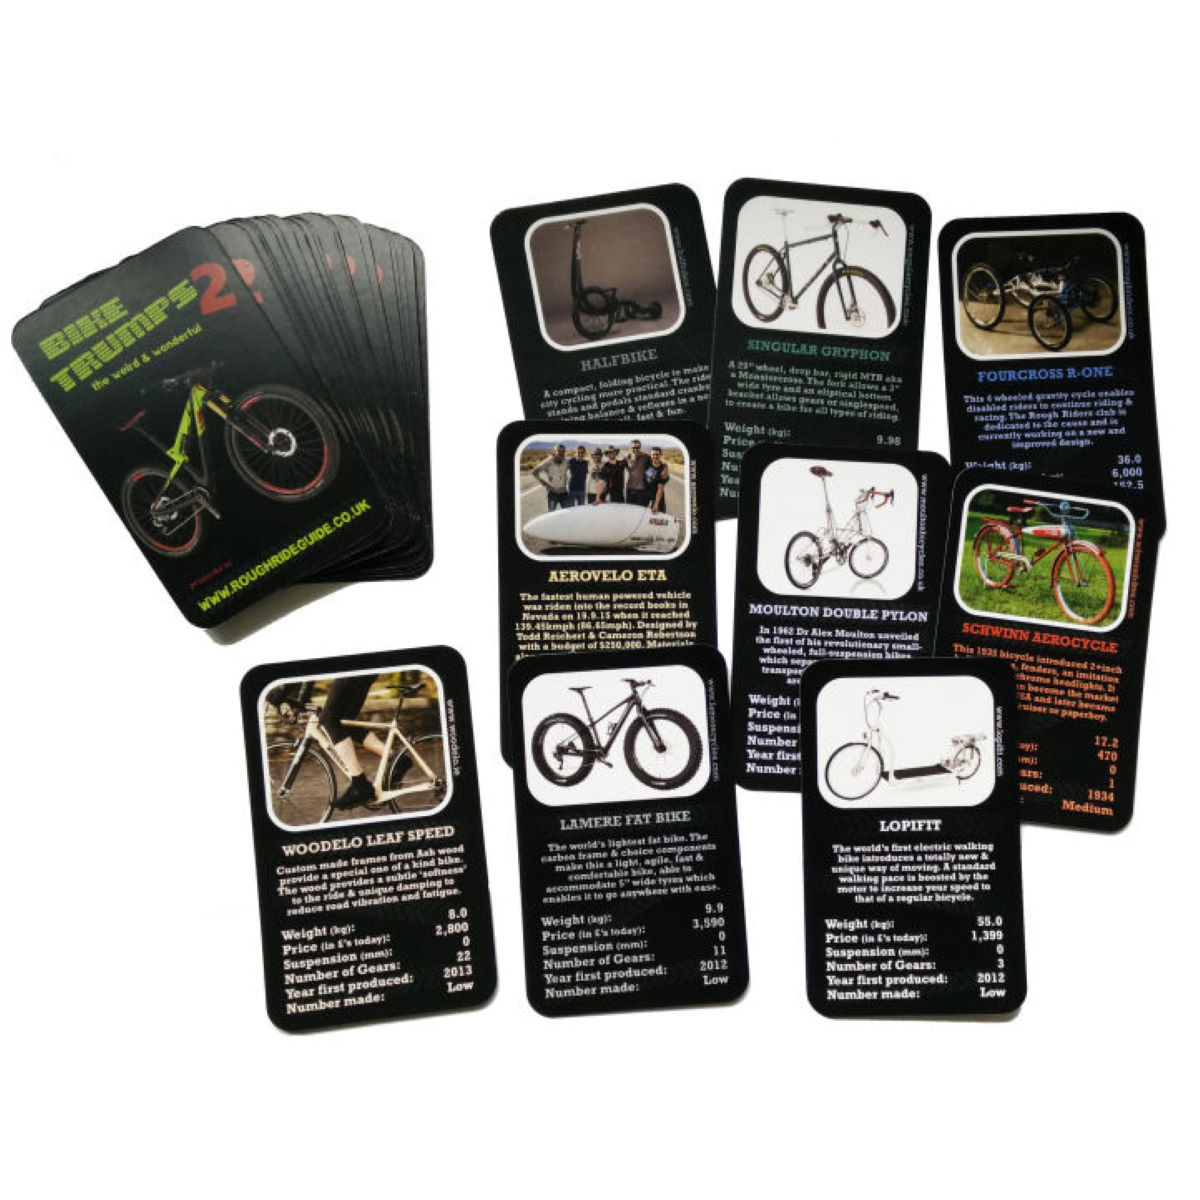 Cordee Bike Trumps 2 - Playing Cards   Gifts